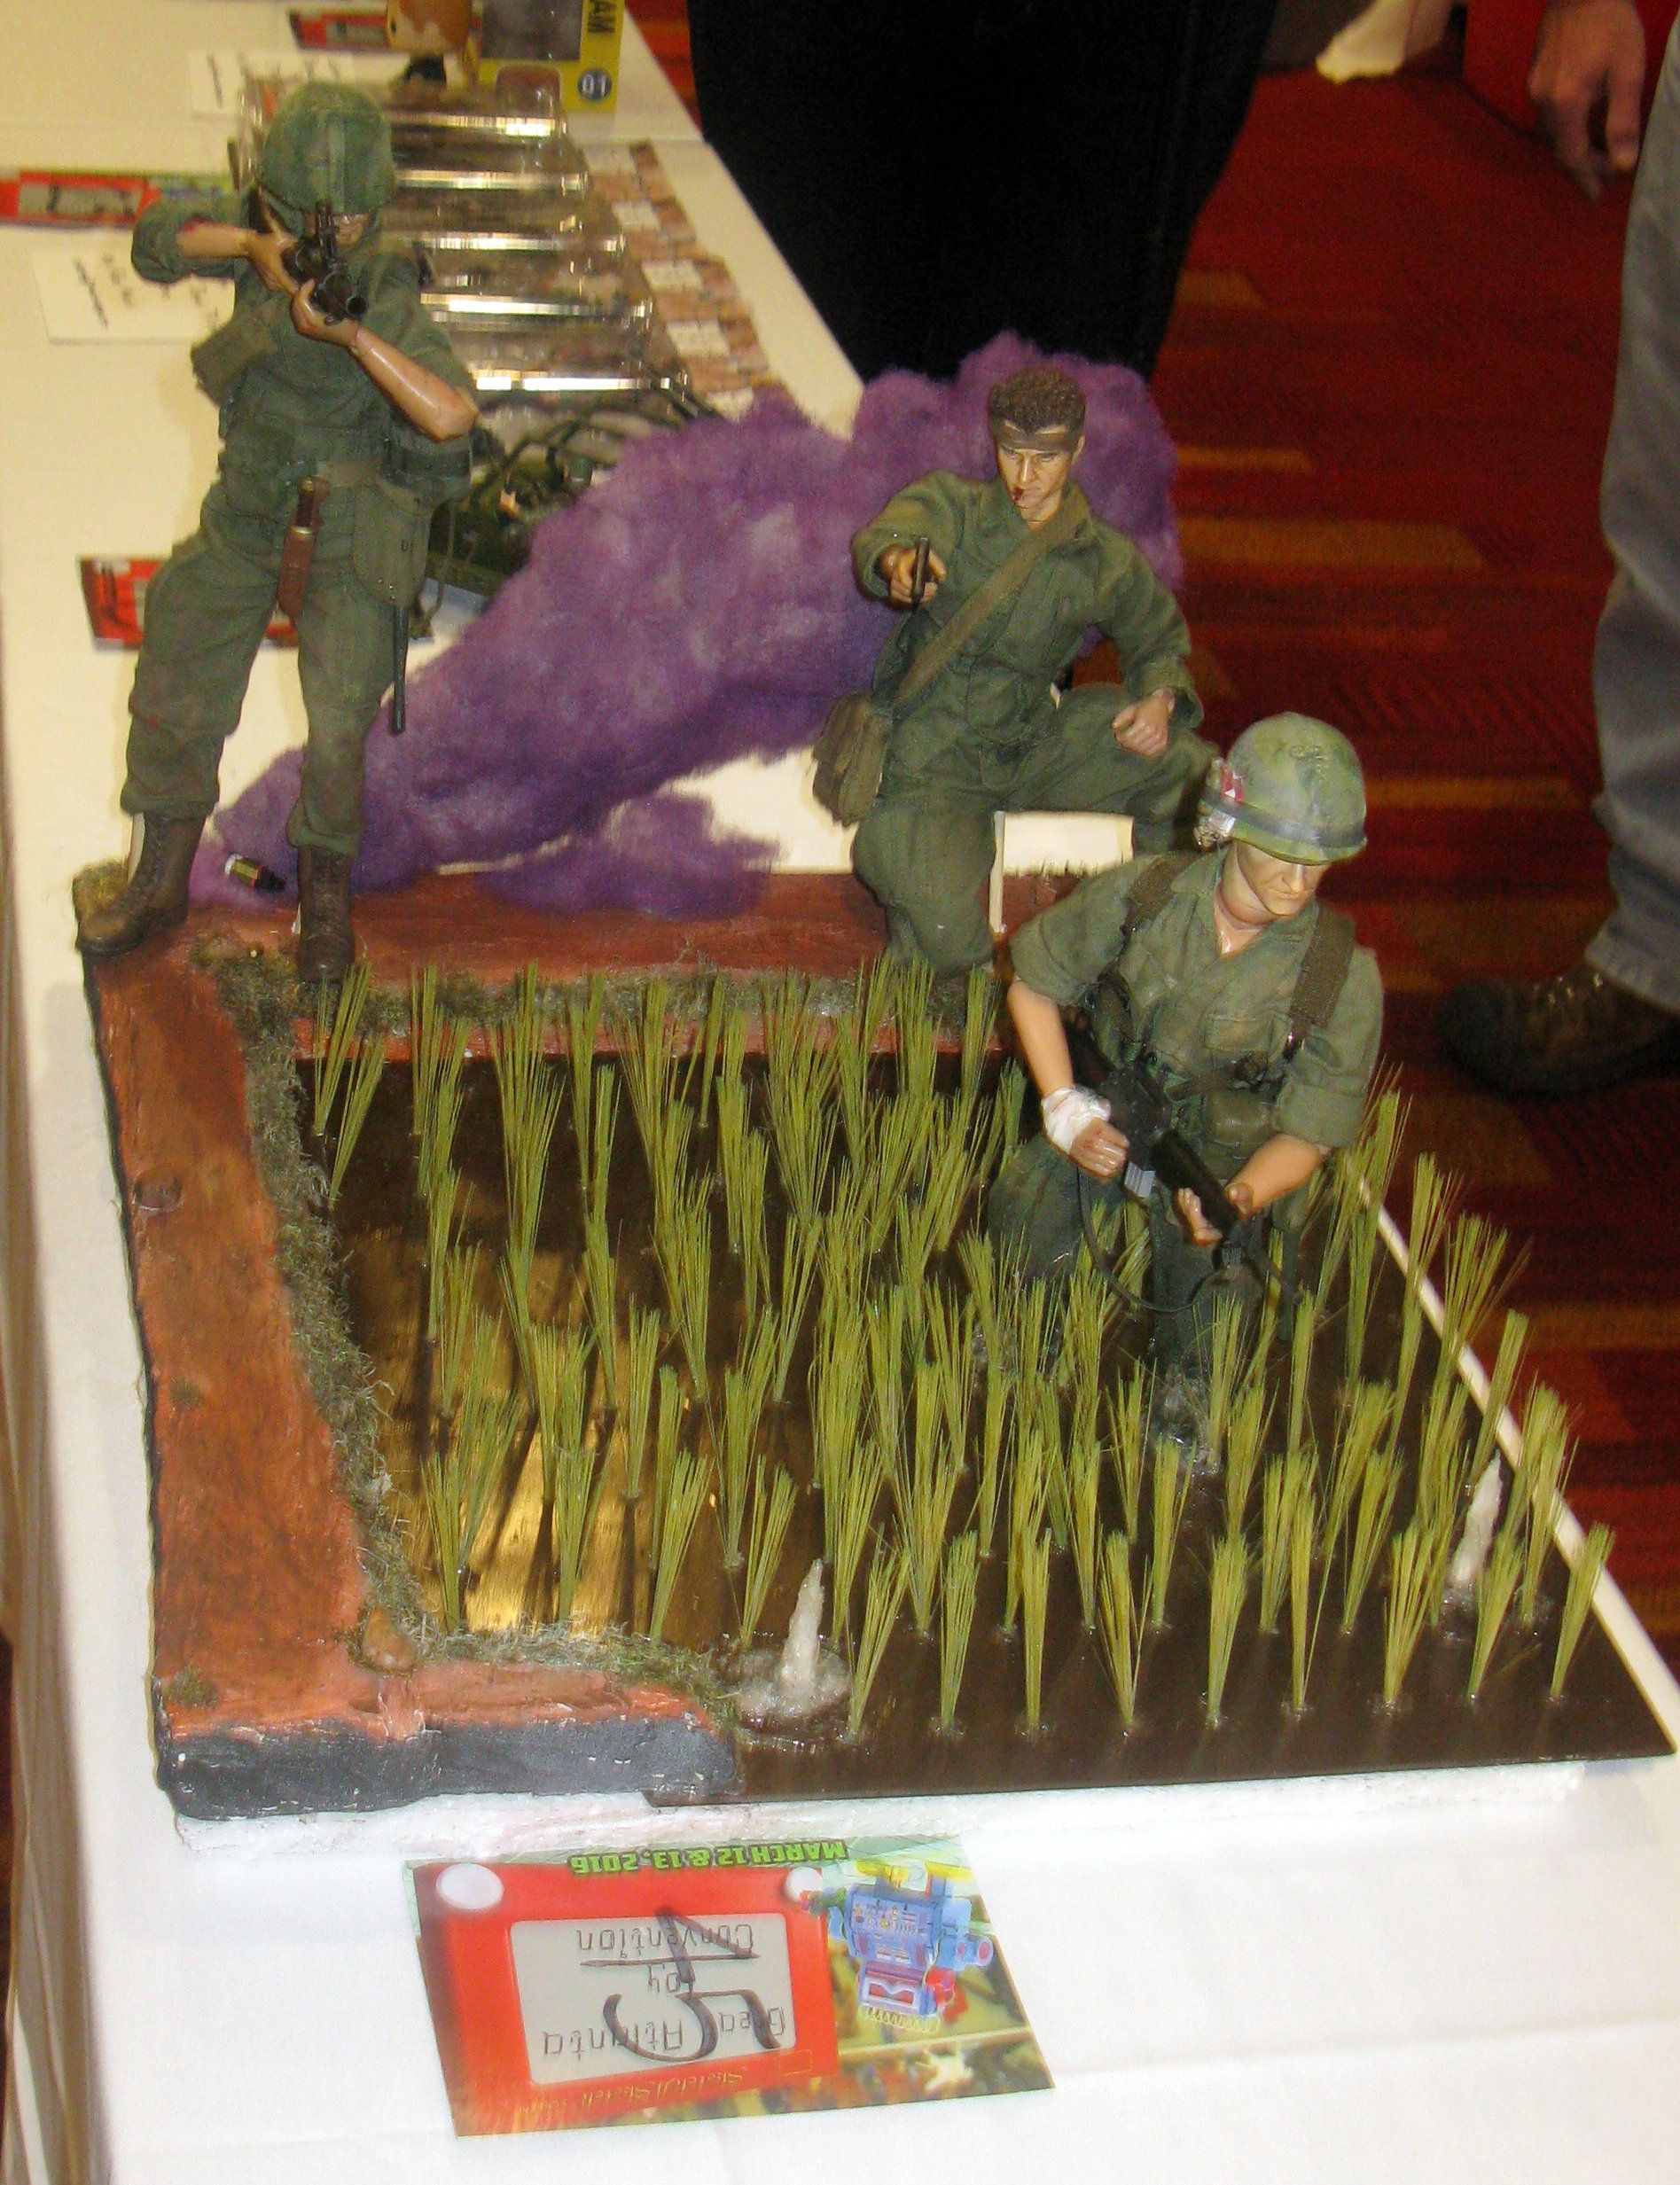 First Place Youth Diorama, Joseph Floyd - Rice Paddy